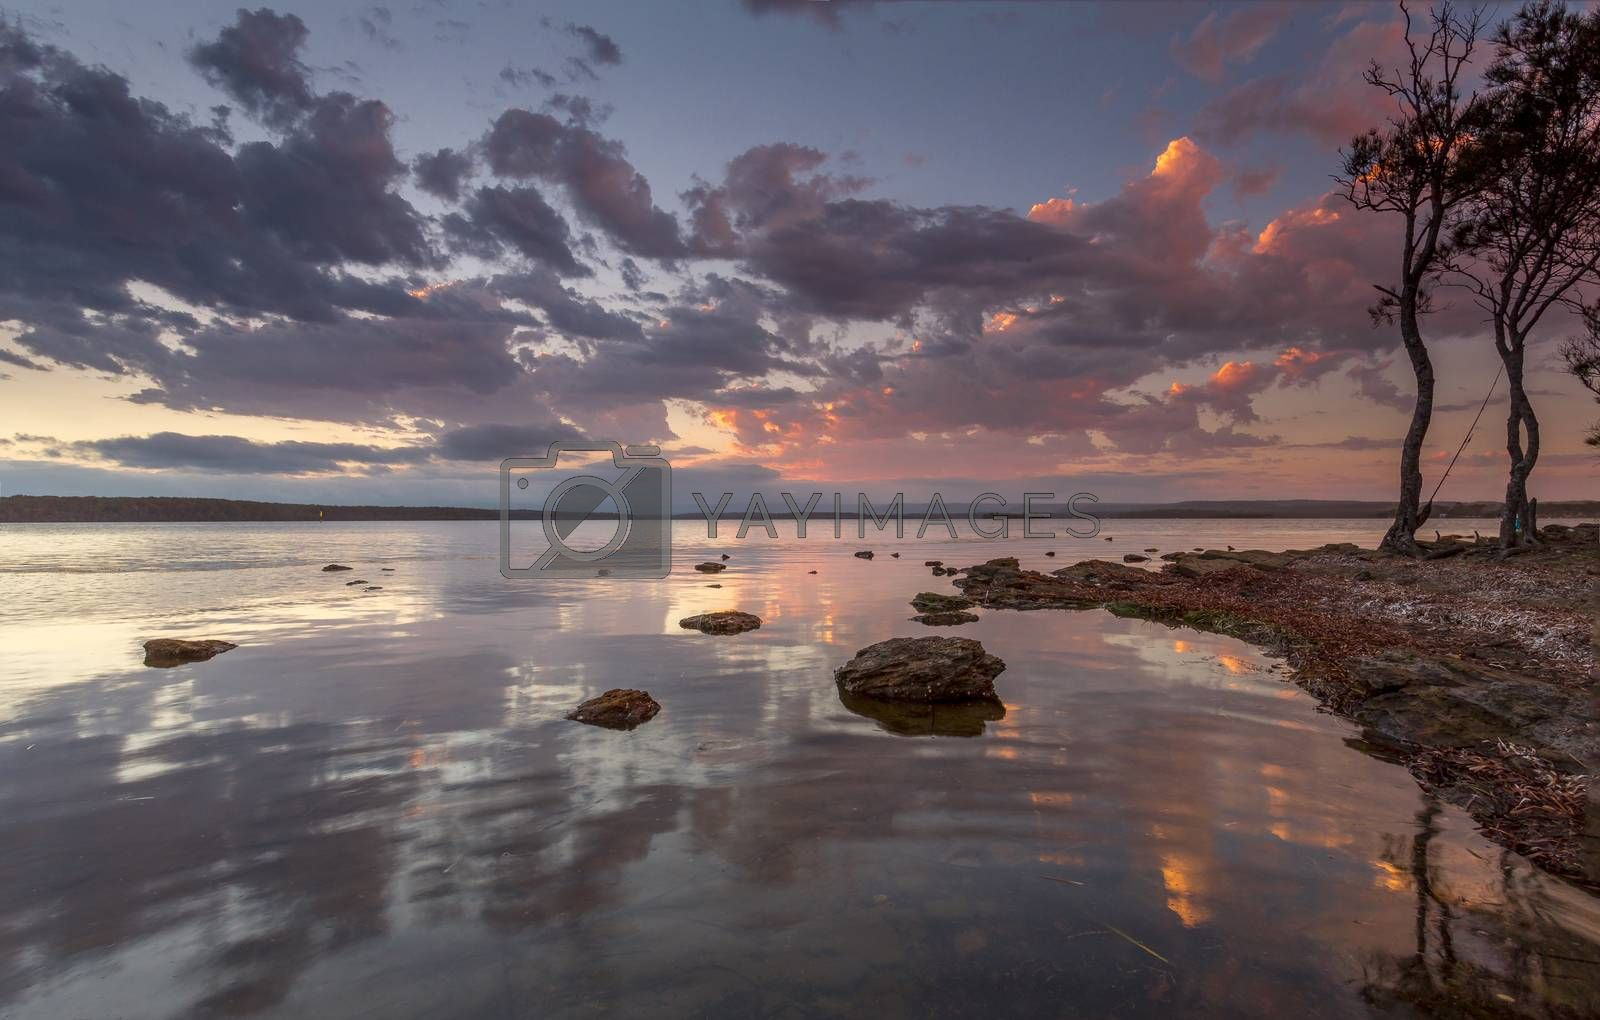 Tranquil sunset on the basin estuary with sunset reflections, the sound of gentle ripples and fish jumping